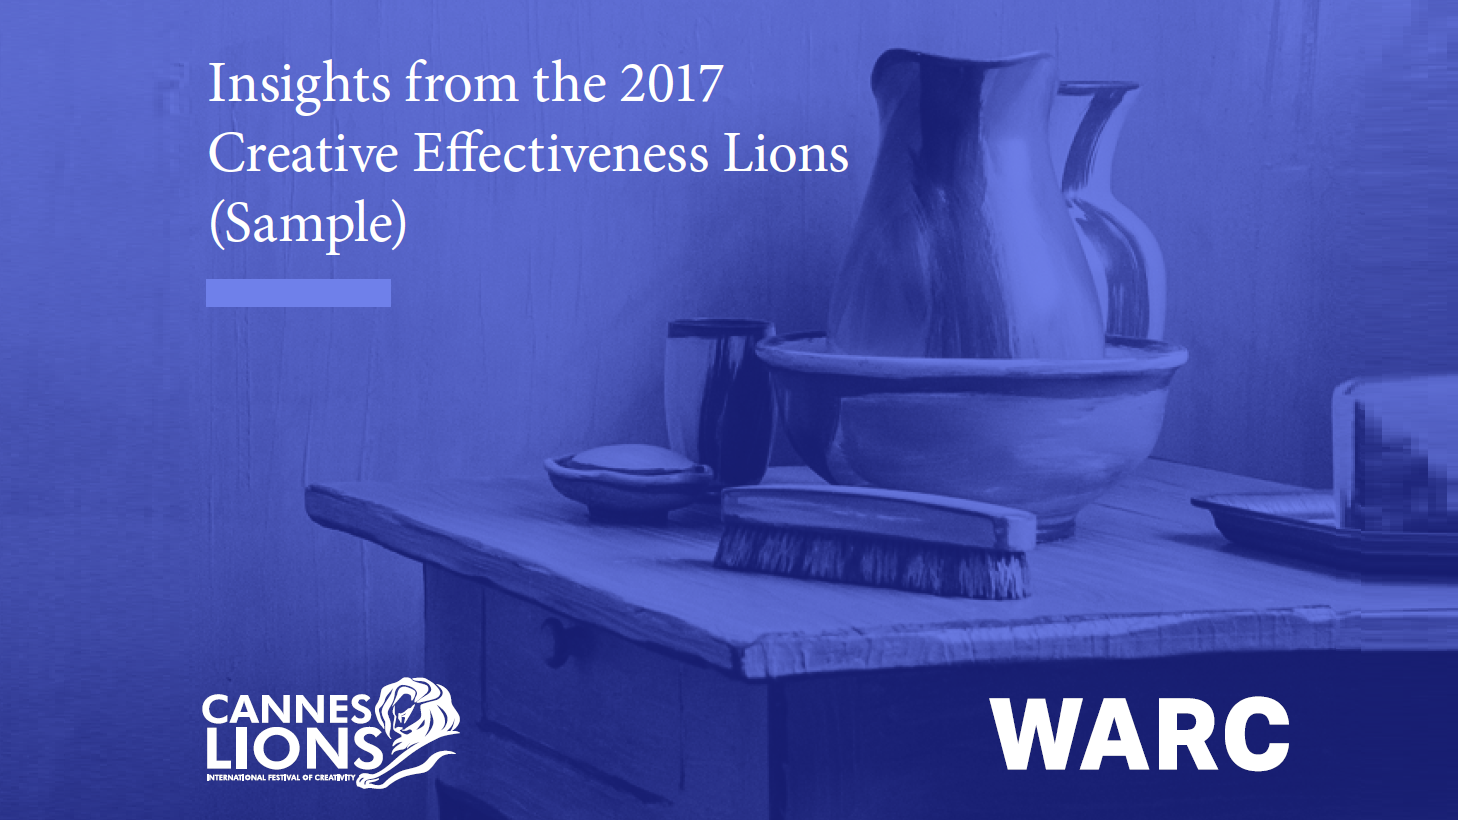 Insight from the 2017 Creative Effectiveness Lions - Warc